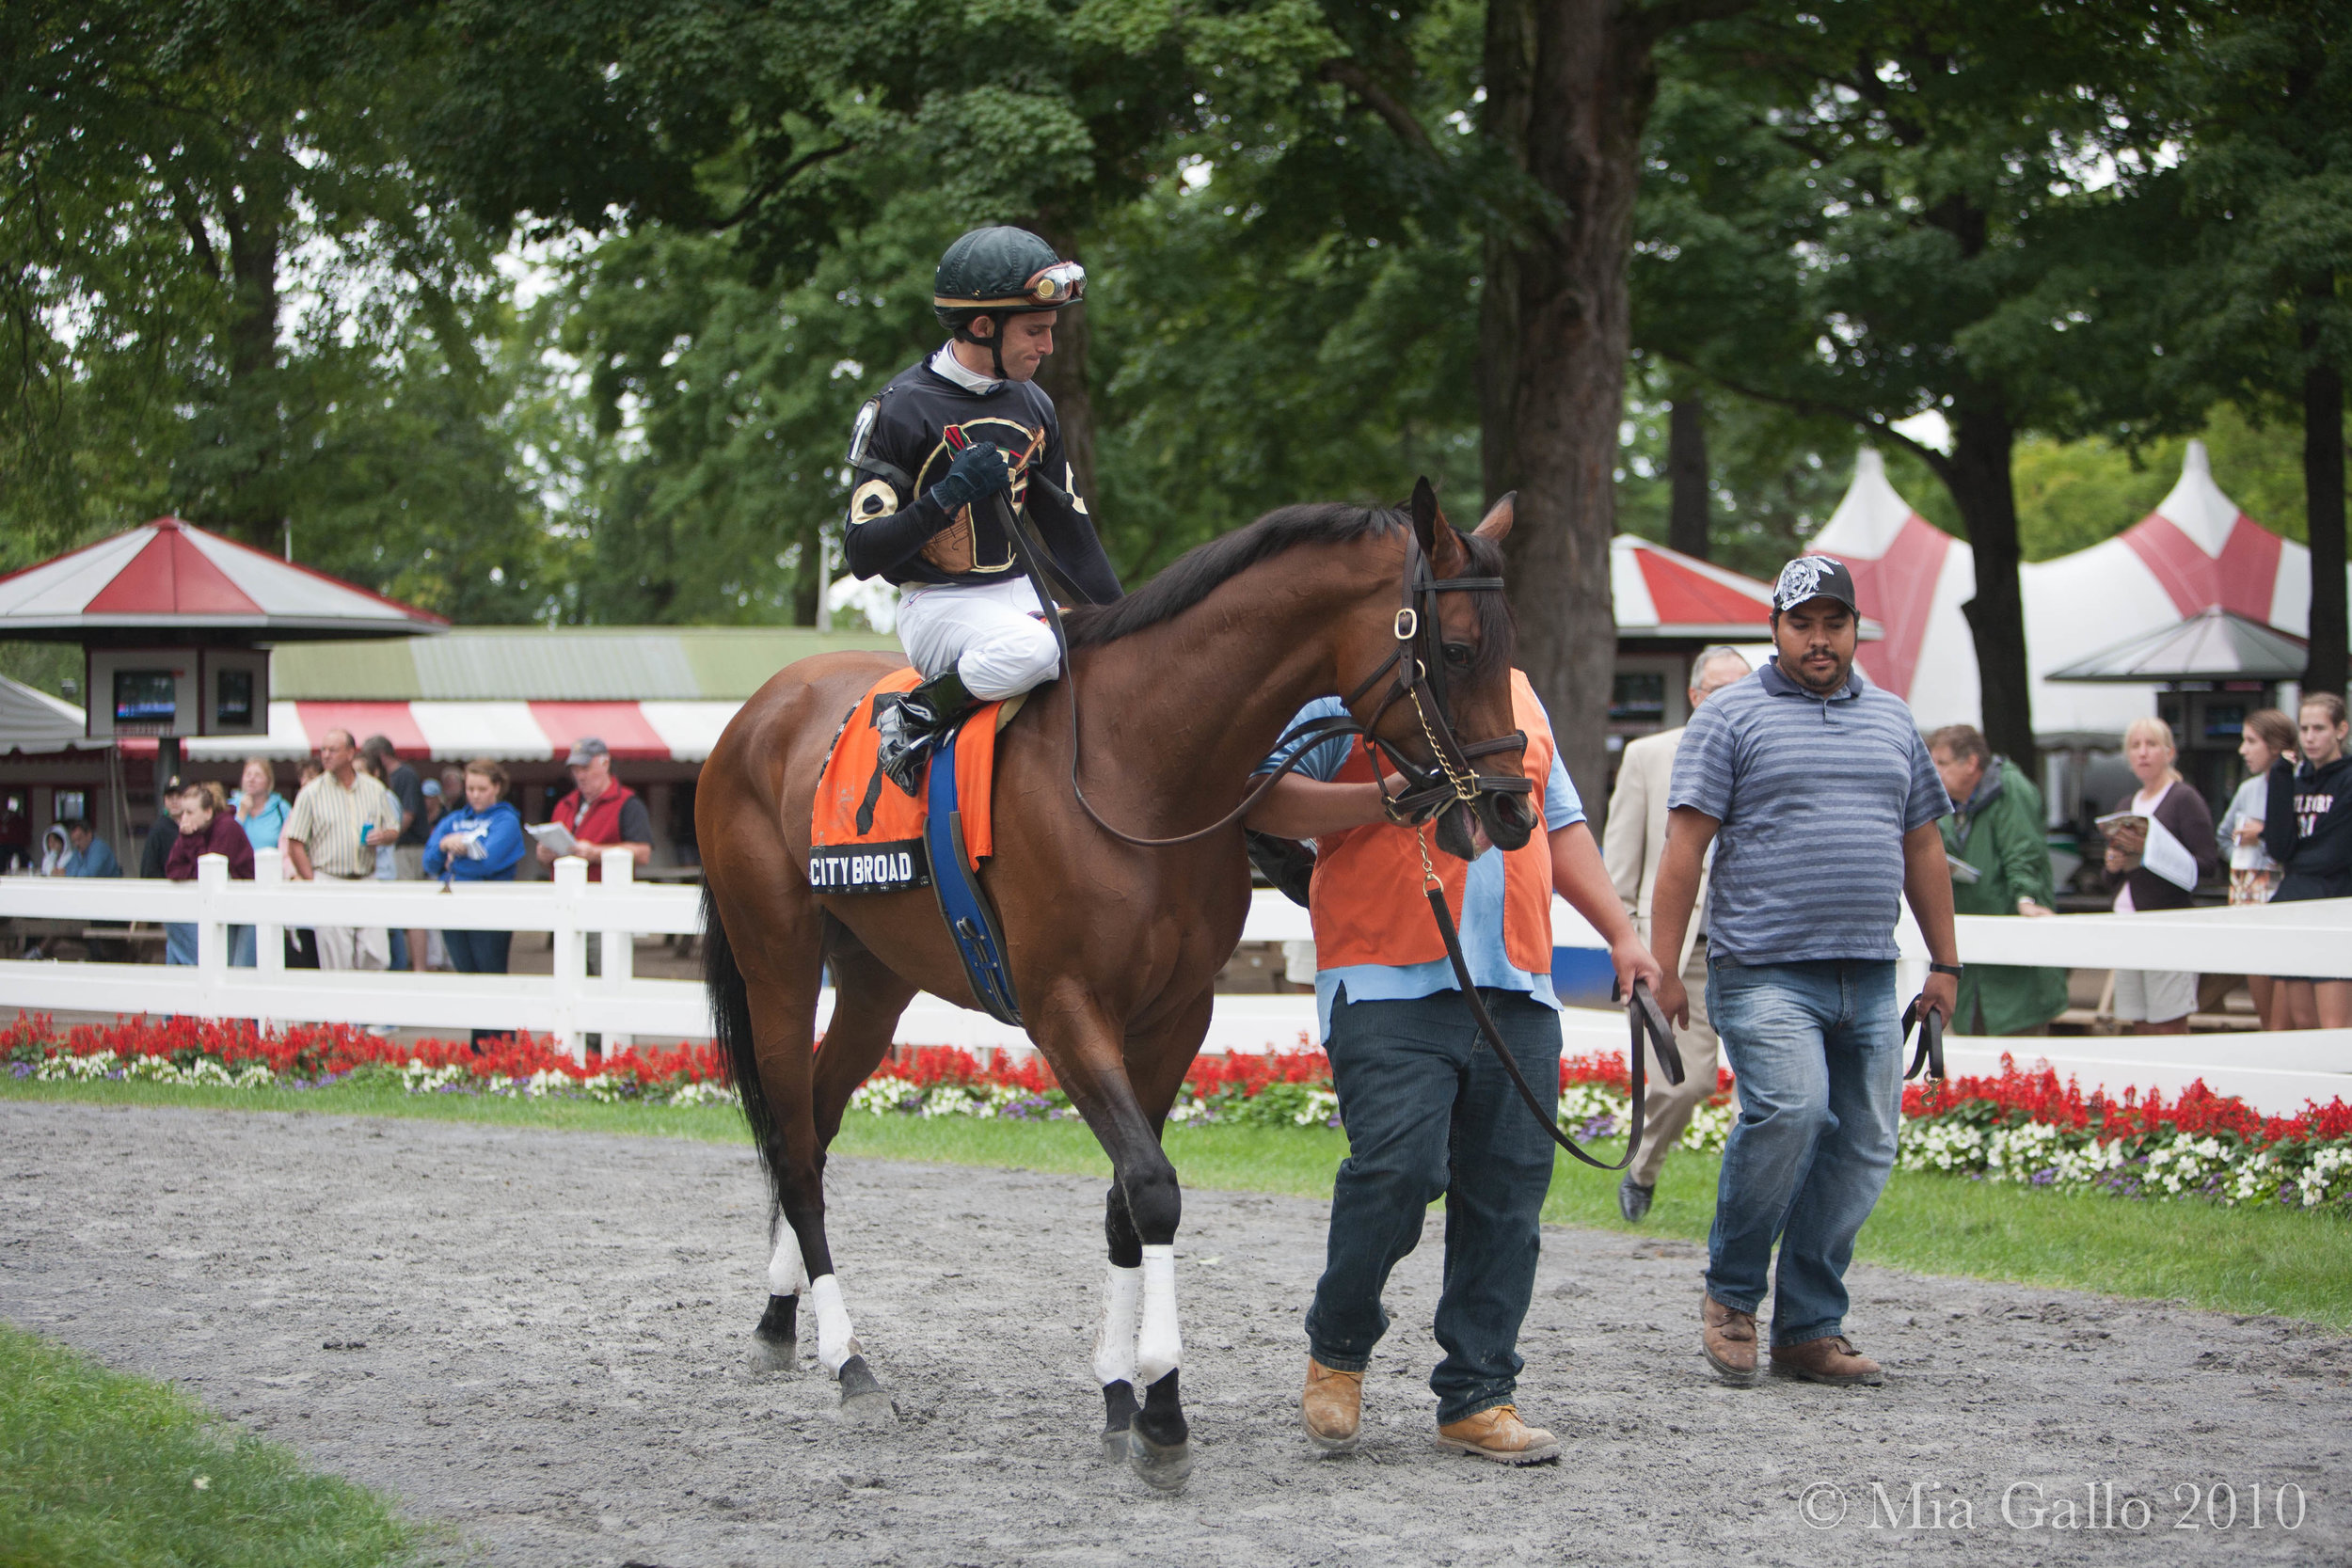 City Broad at Saratoga Race track (Paddock - 2010)